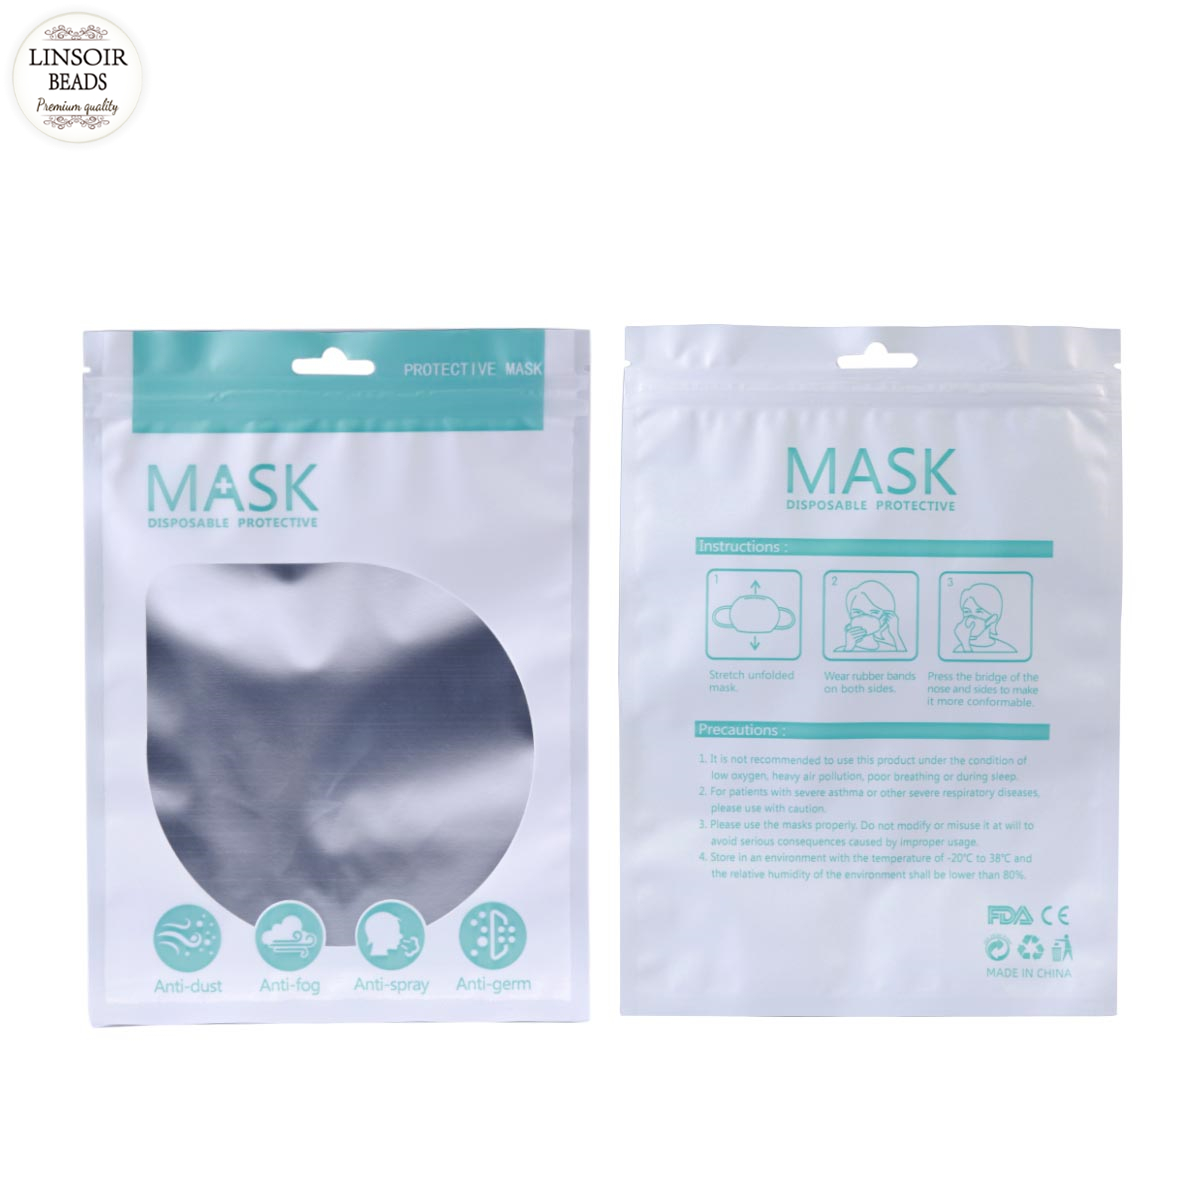 Linsoir 10pcs/lot Disposable Safe Mask Packaging Bag Disposable Face Mask Packaging Bags Transparent Independent Storage Bag